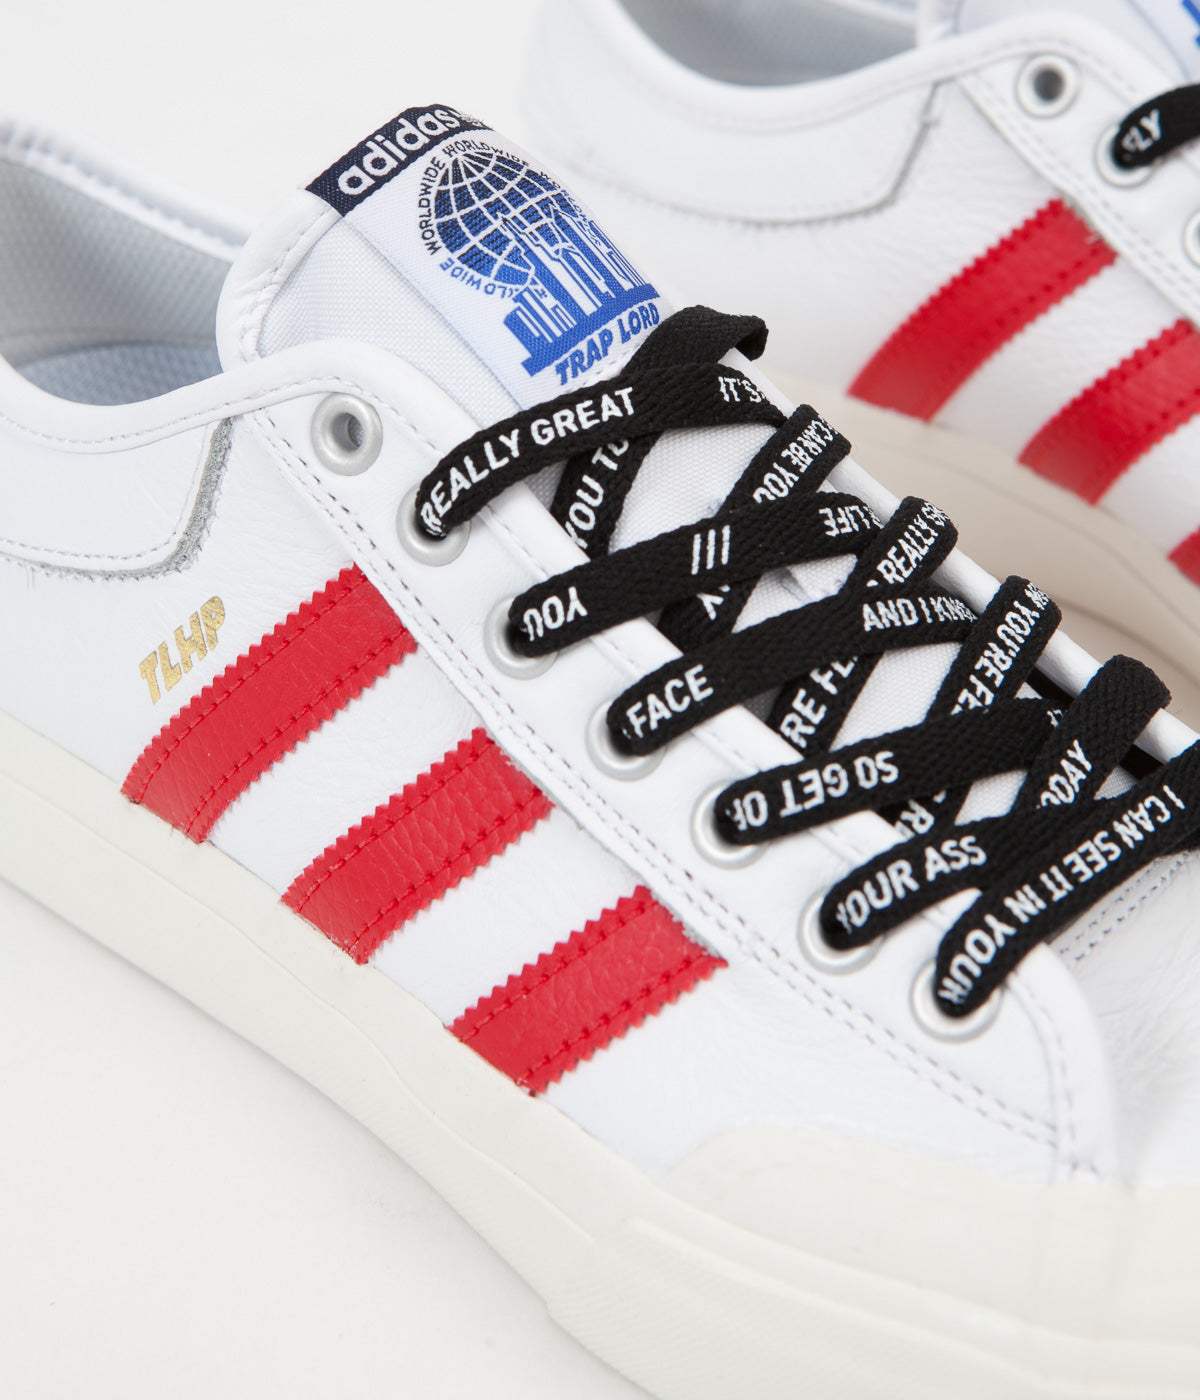 2ccc51155256 Adidas x Trap Lord Ferg Matchcourt Shoes - White Scarlet ... ASAP Ferg x Adidas  Matchcourt Trap Lord Release Date ...